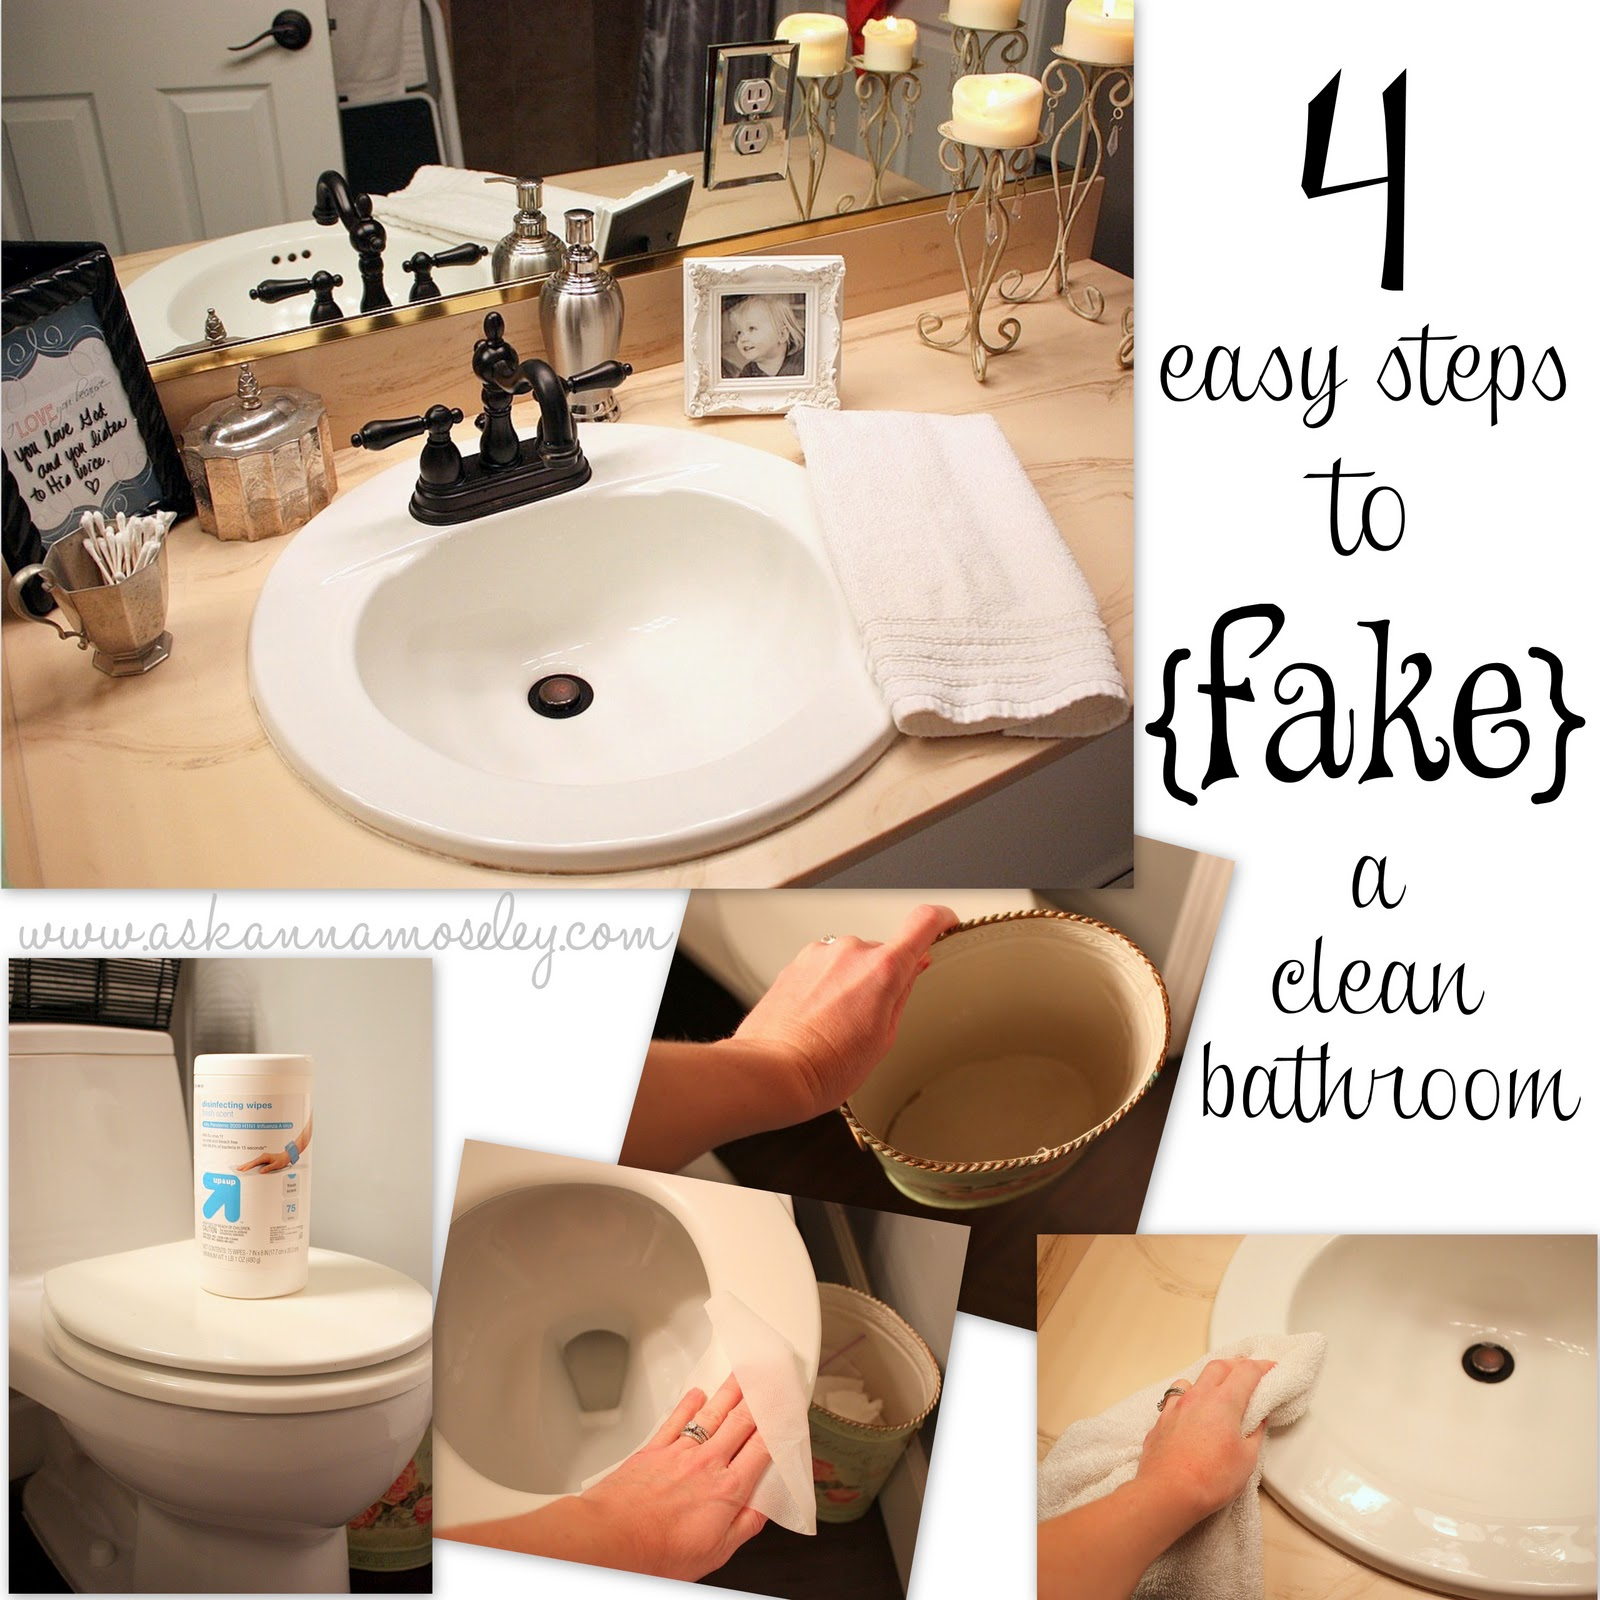 How To Fake A Clean Bathroom By My Guest Anna Organizing